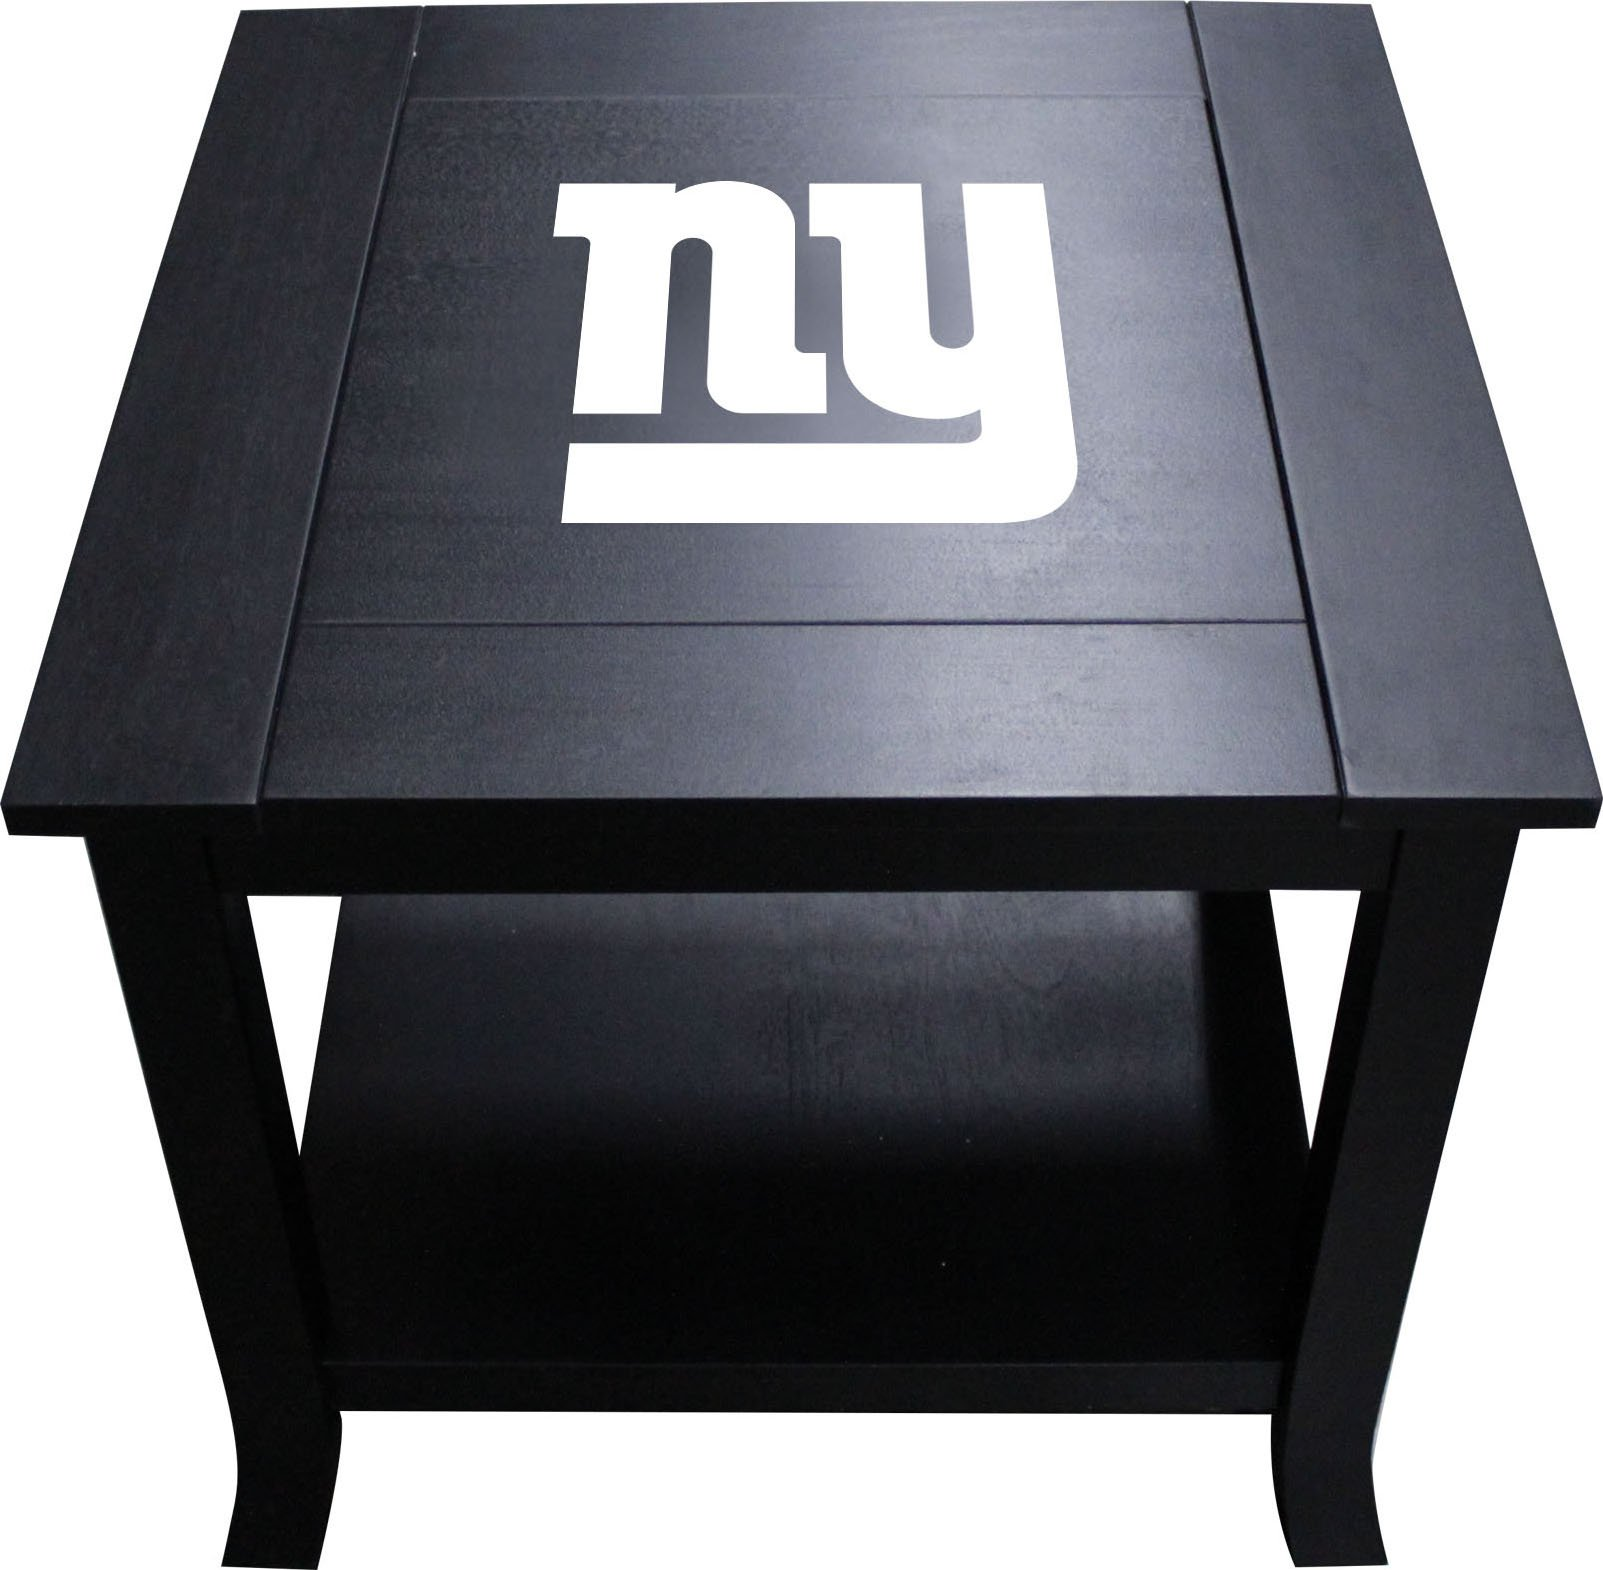 Imperial Officially Licensed NFL Furniture: Hardwood Side/End Table, New York Giants